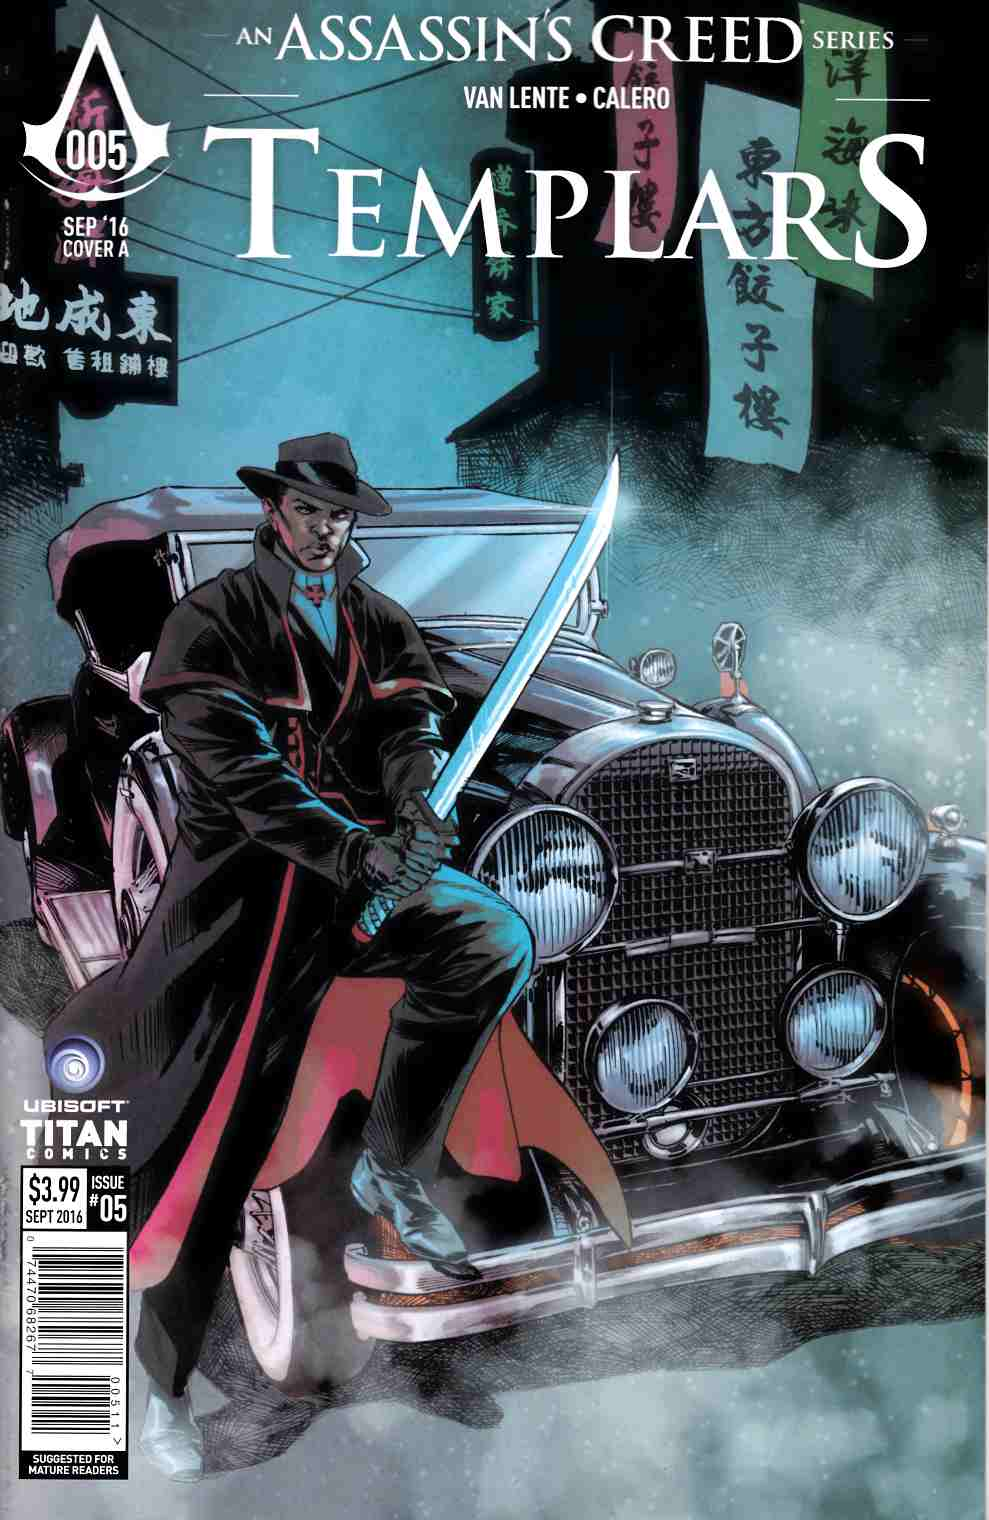 Assassins Creed Templars #5 Cover A [Titan Comic]